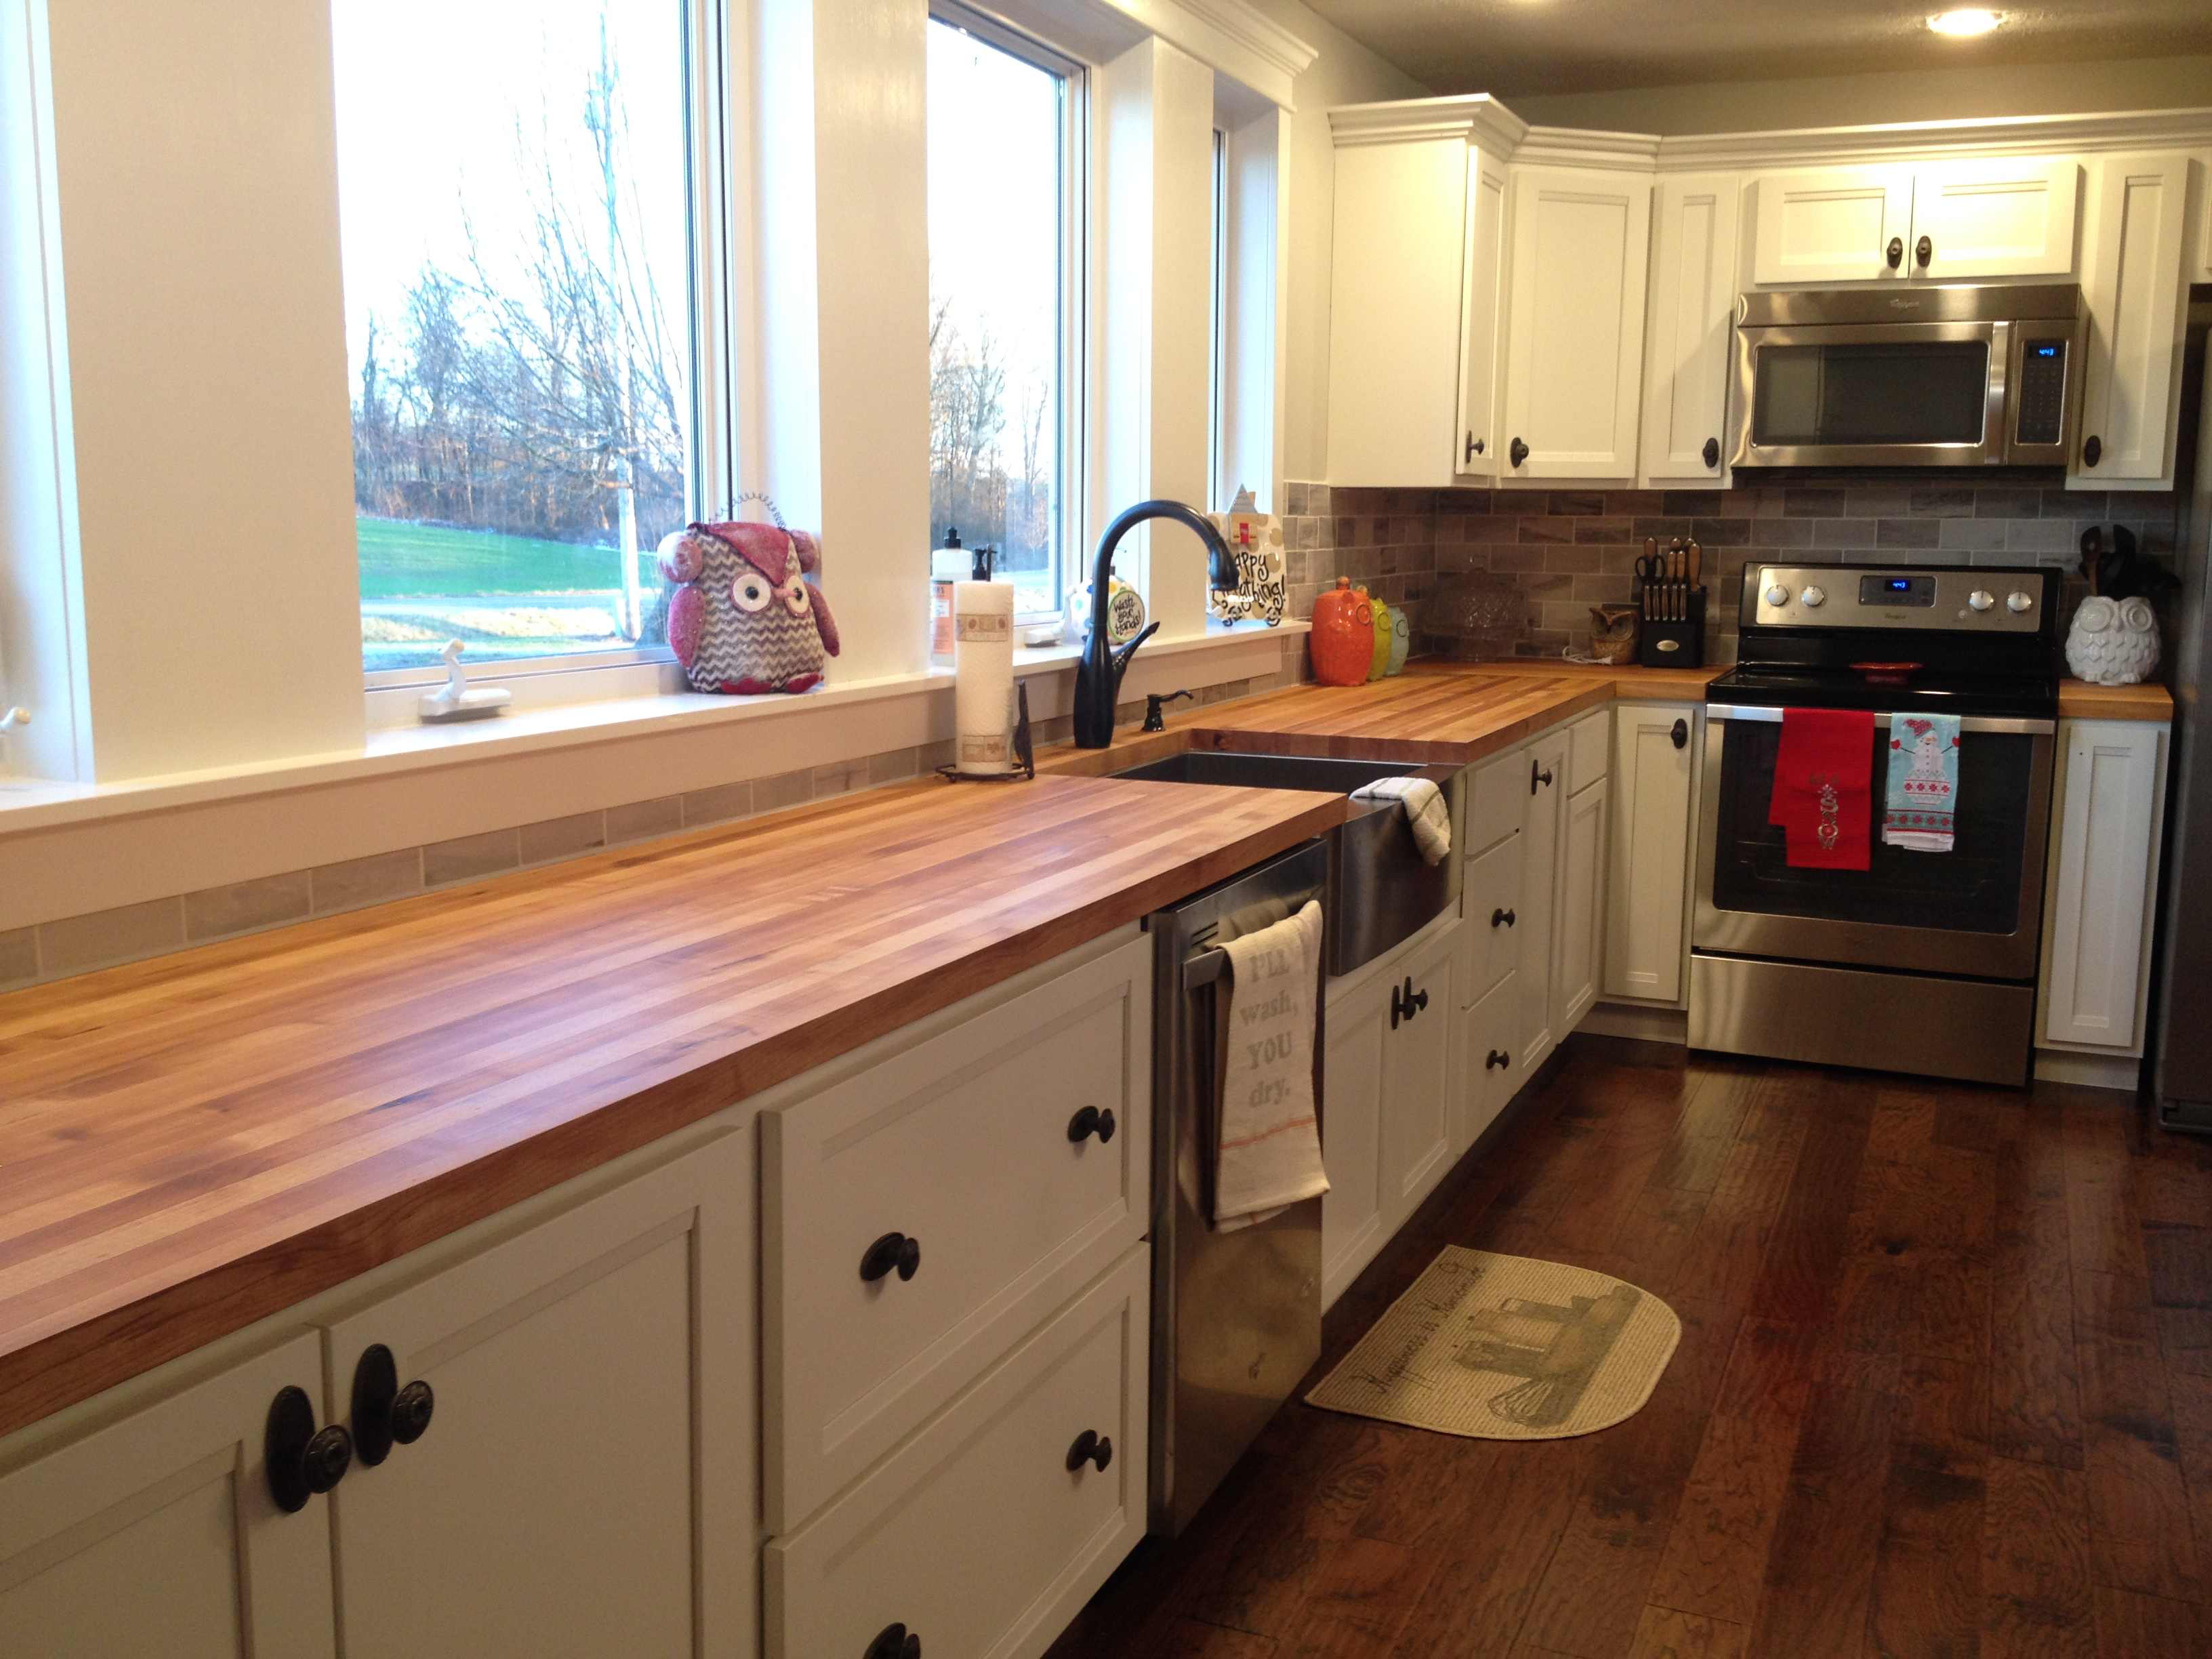 Exceptionnel Pros And Cons Of Butcher Block Countertops In The Kitchen